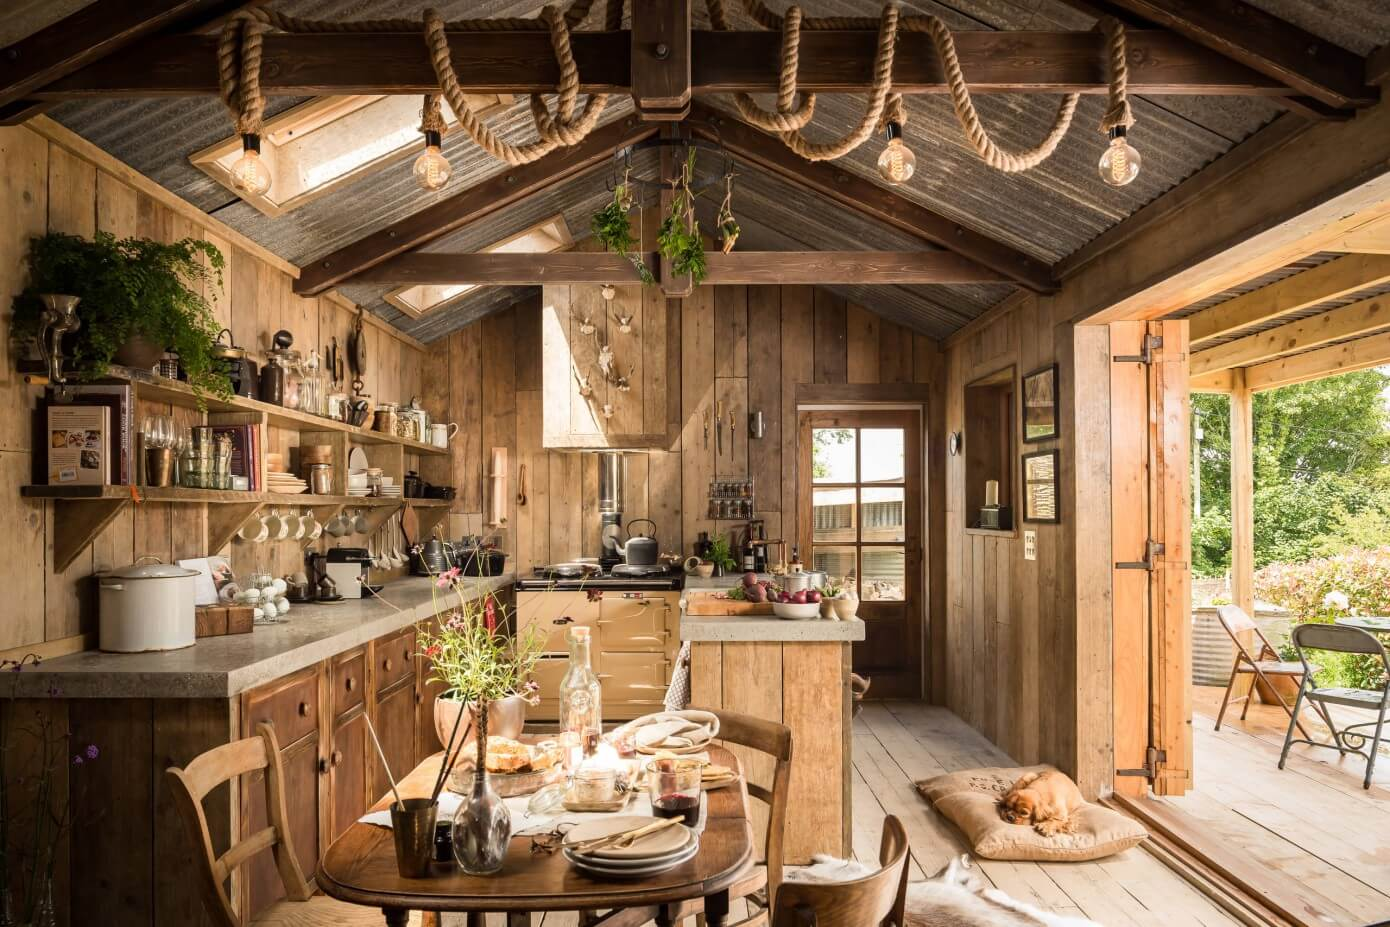 The rustic charm of wood. Kitchen and dining room.